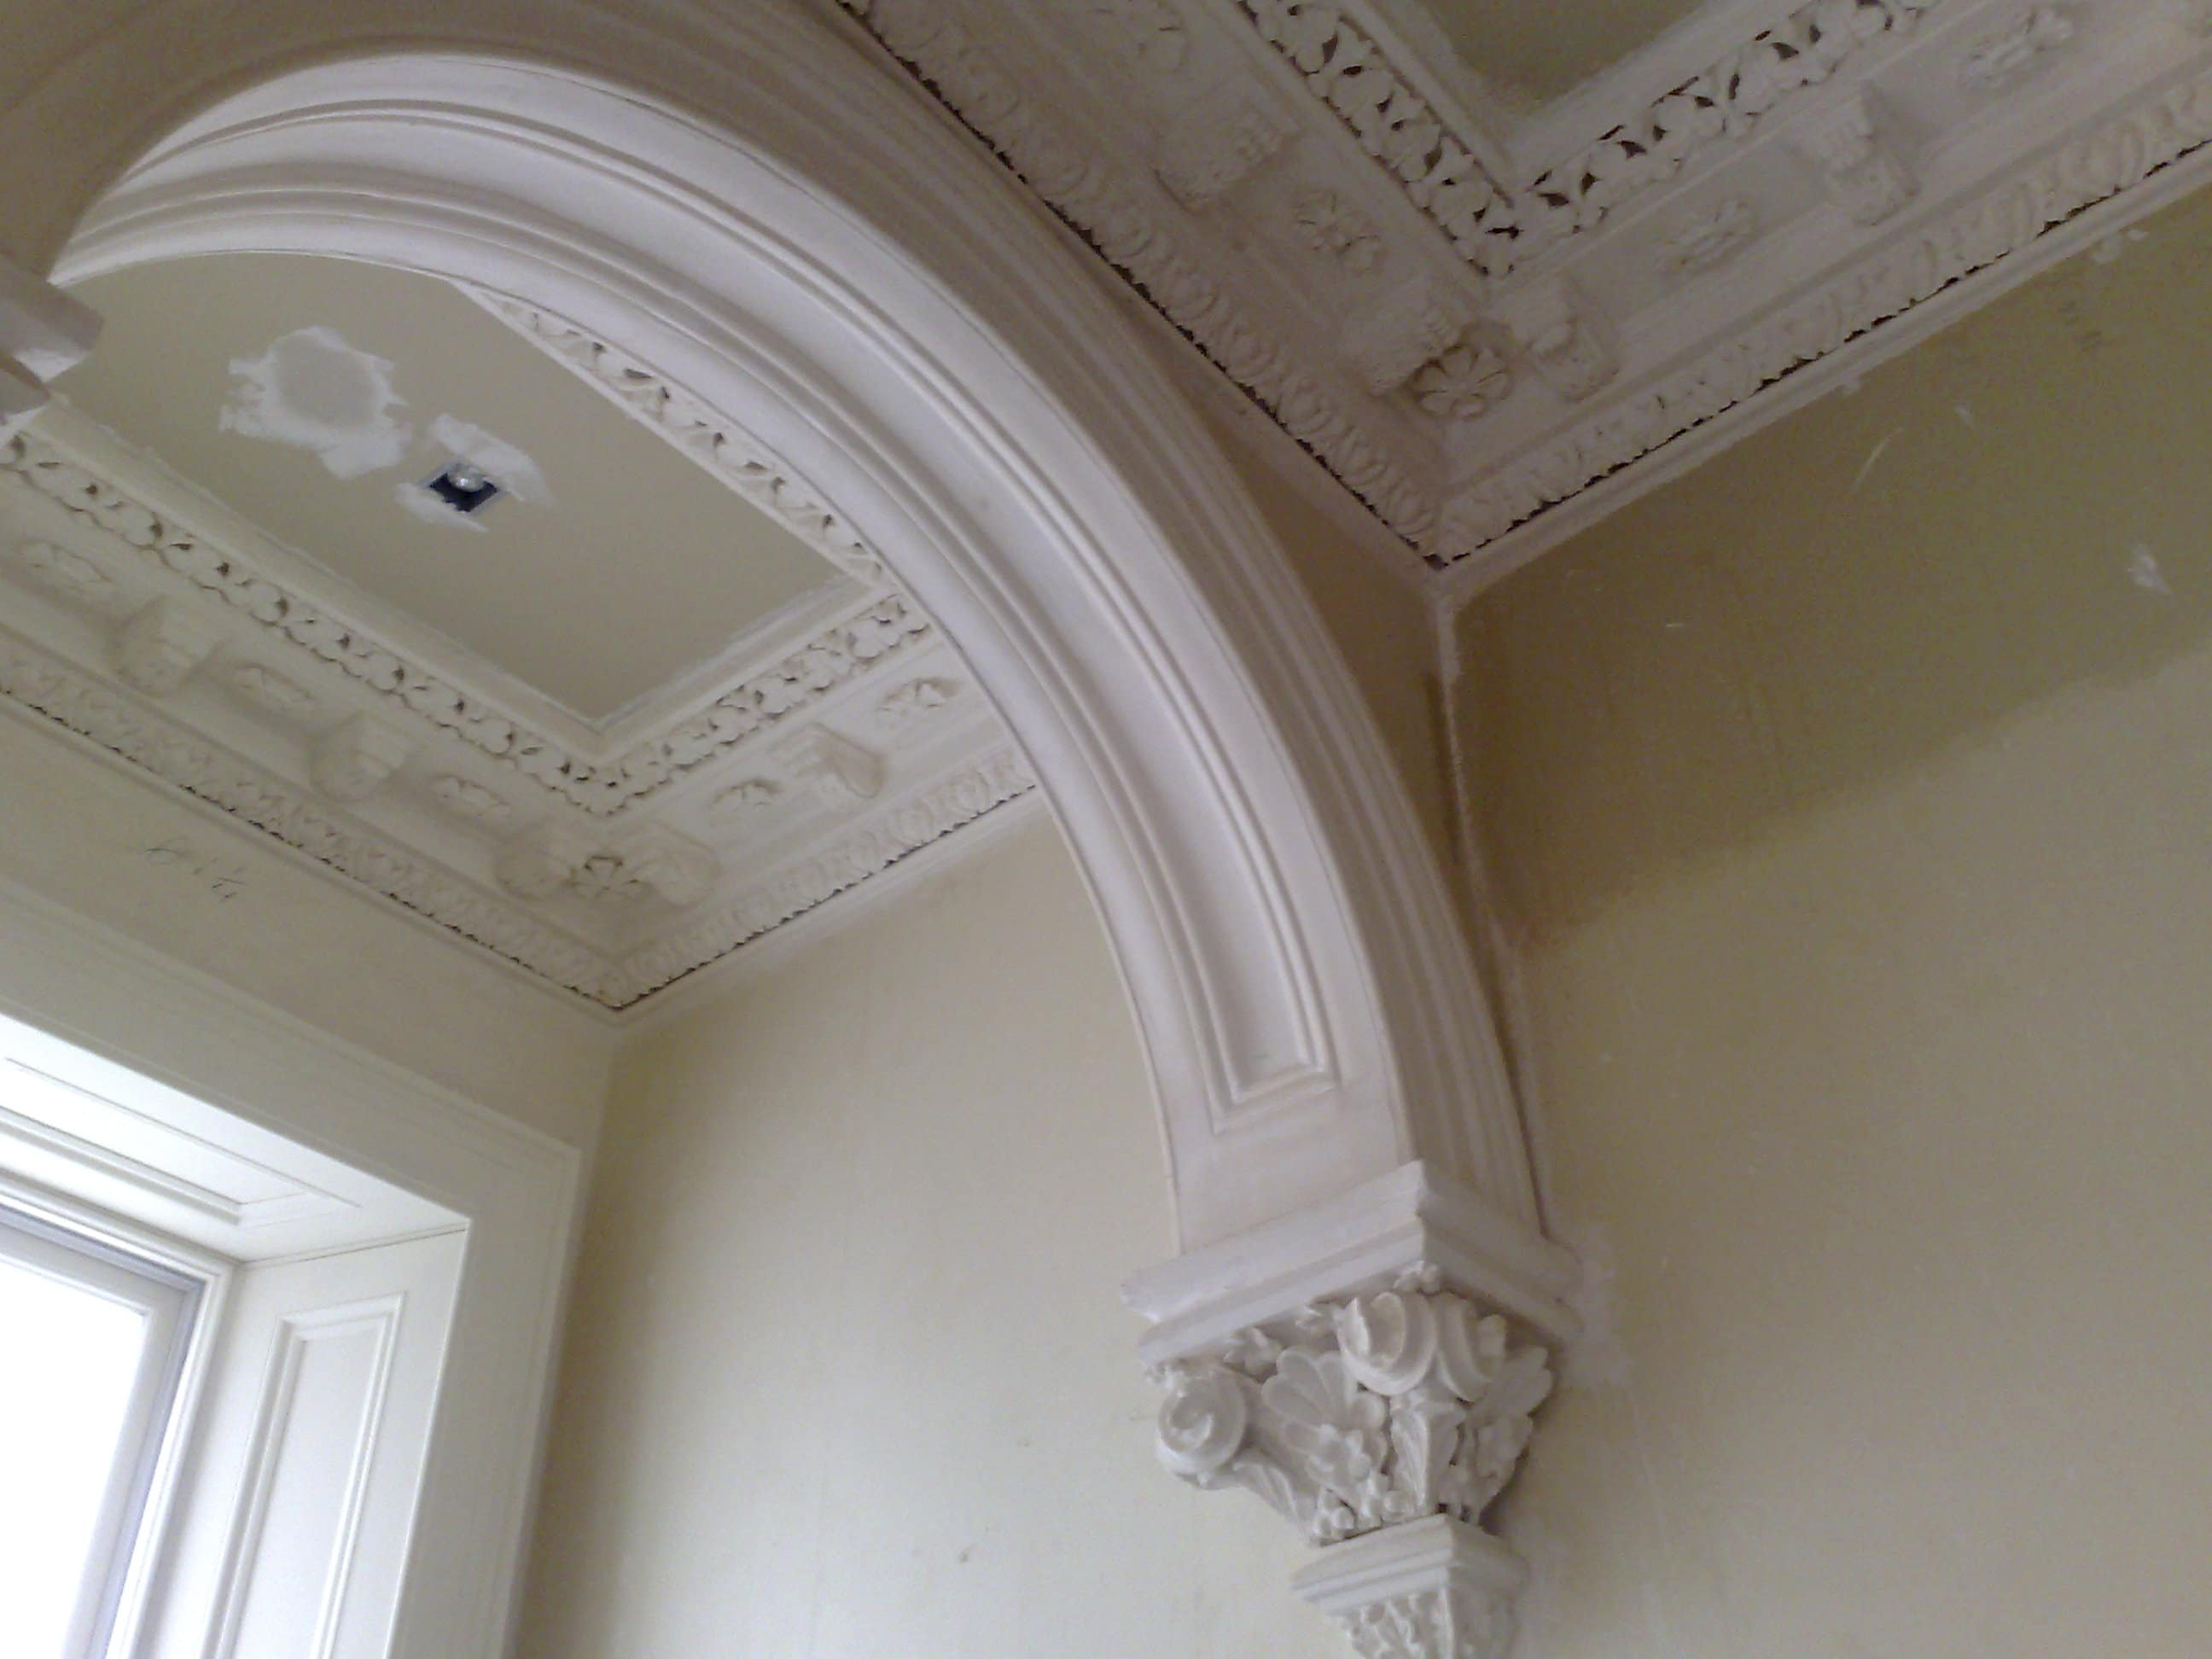 Arch, Cornices and Centre pieces